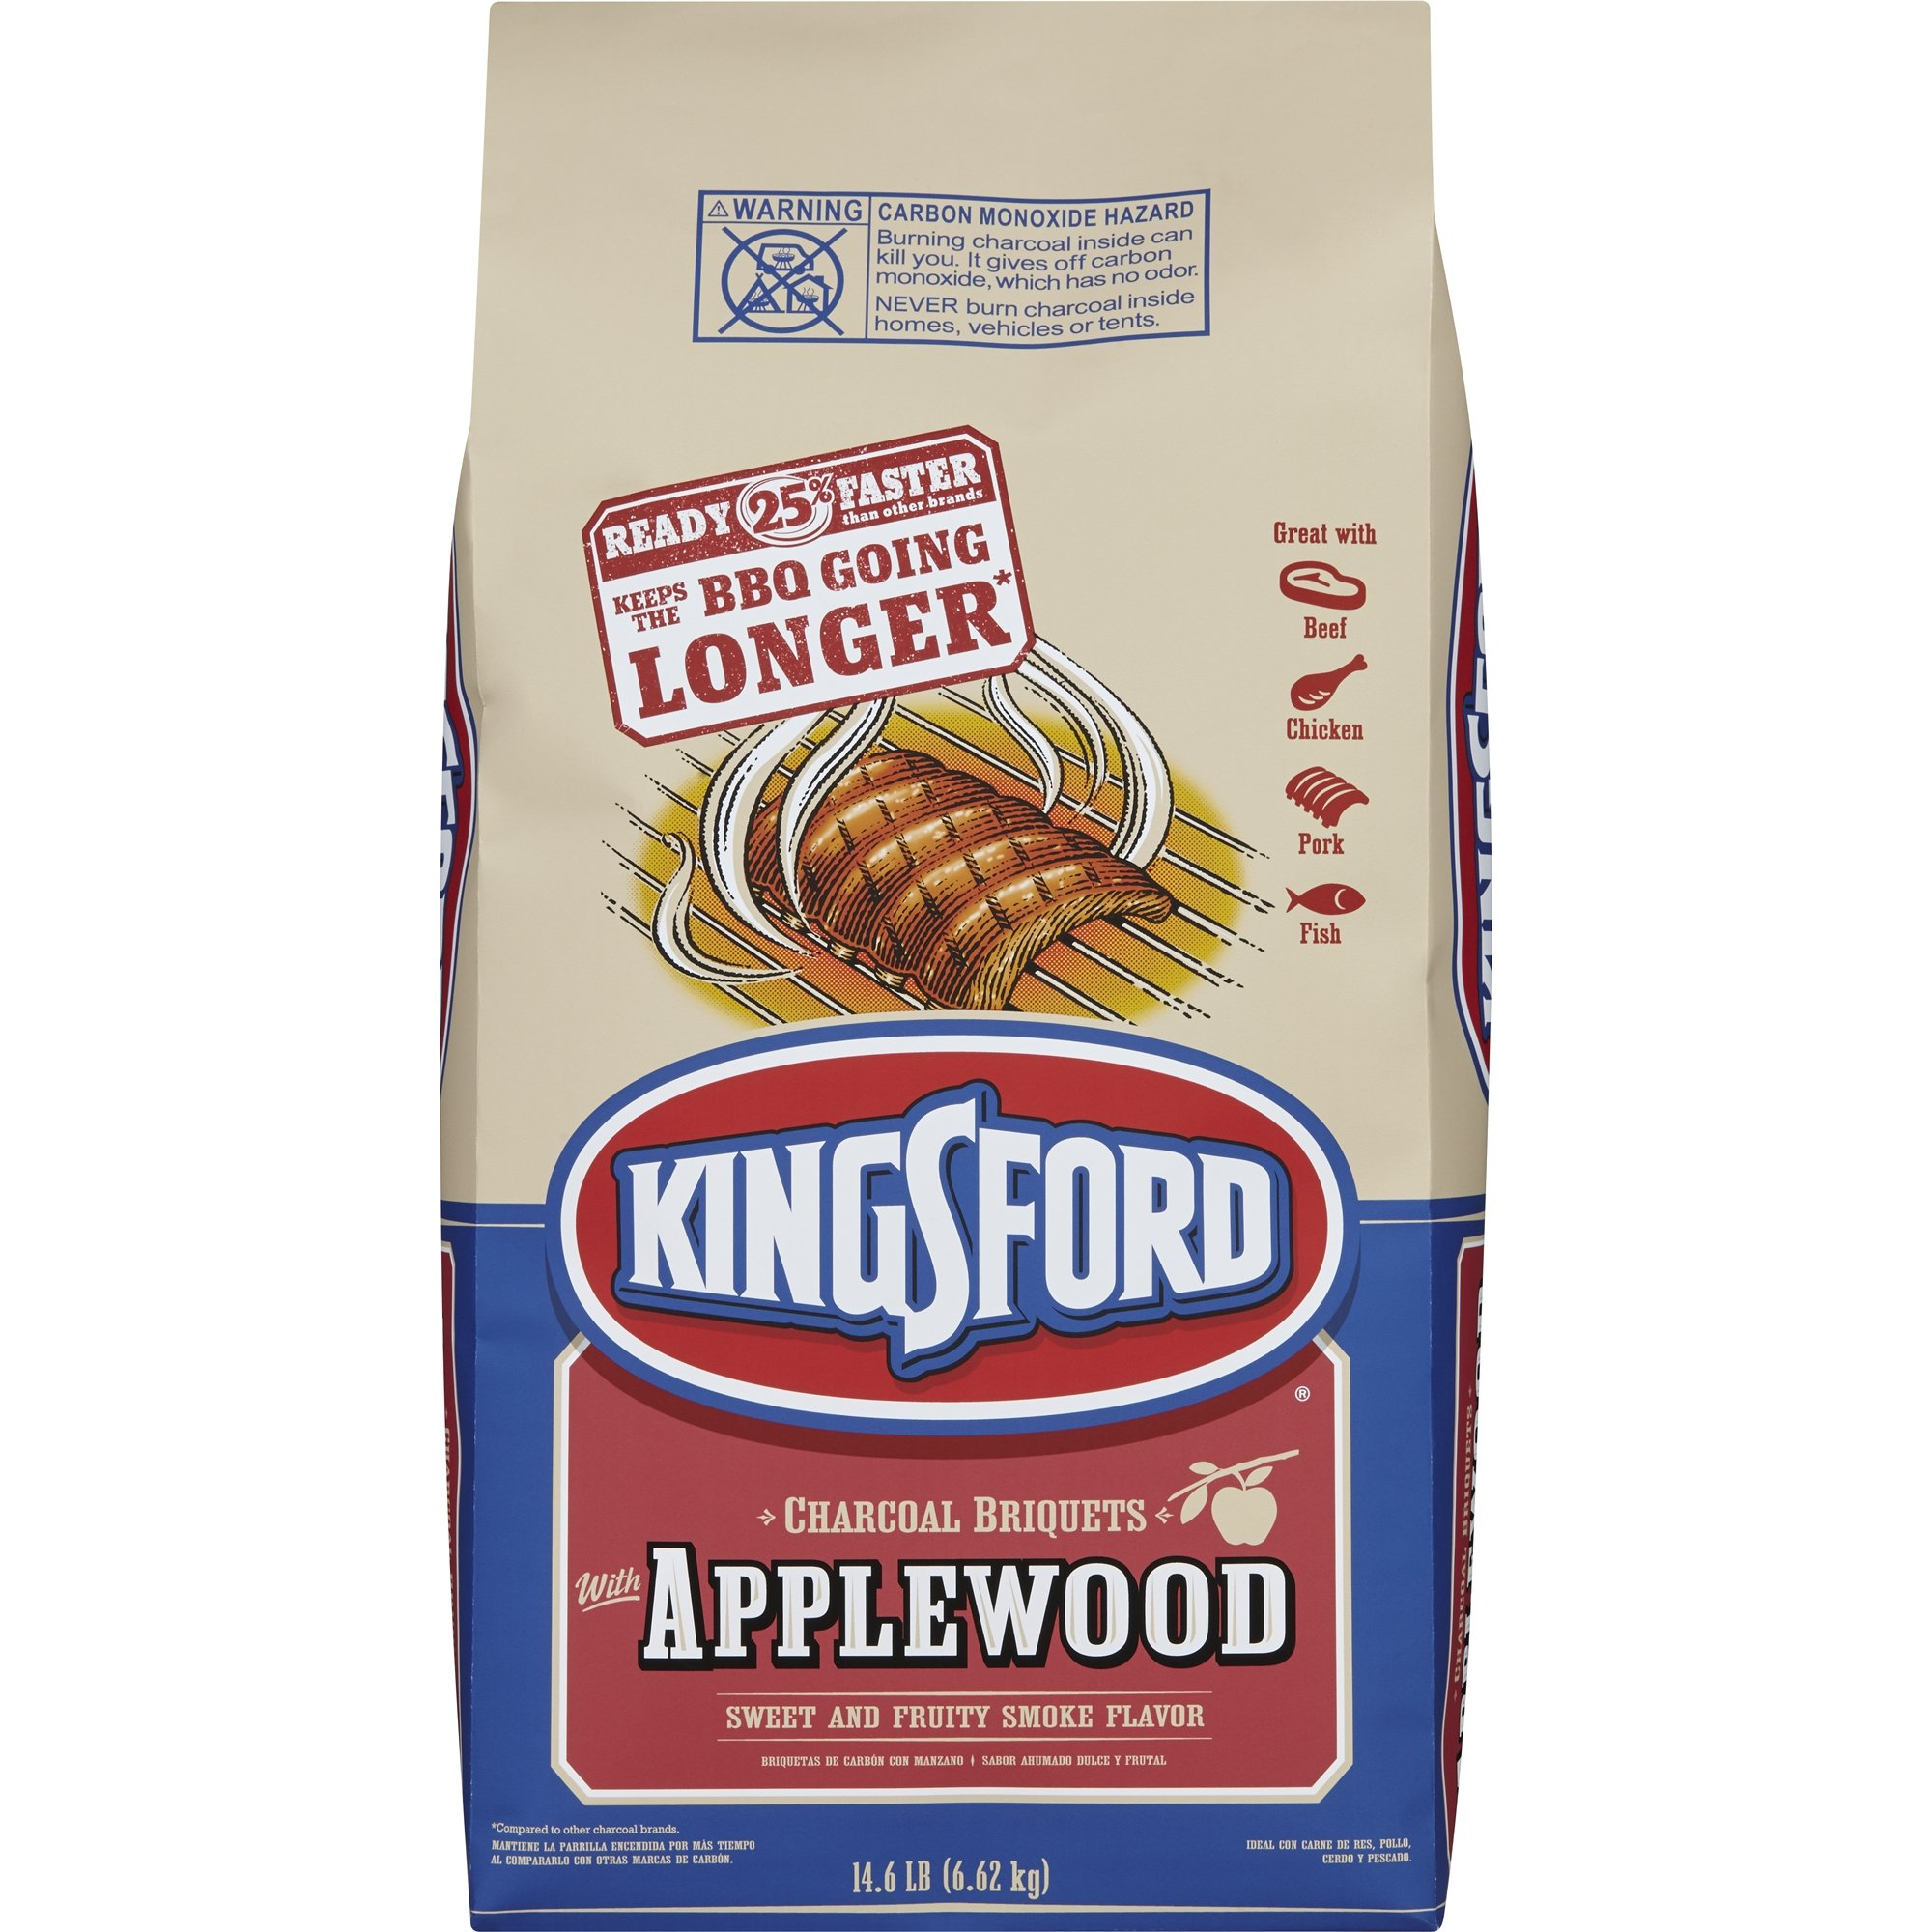 Kingsford Charcoal Briquettes with Applewood, 14.6 Pounds PACK OF 3